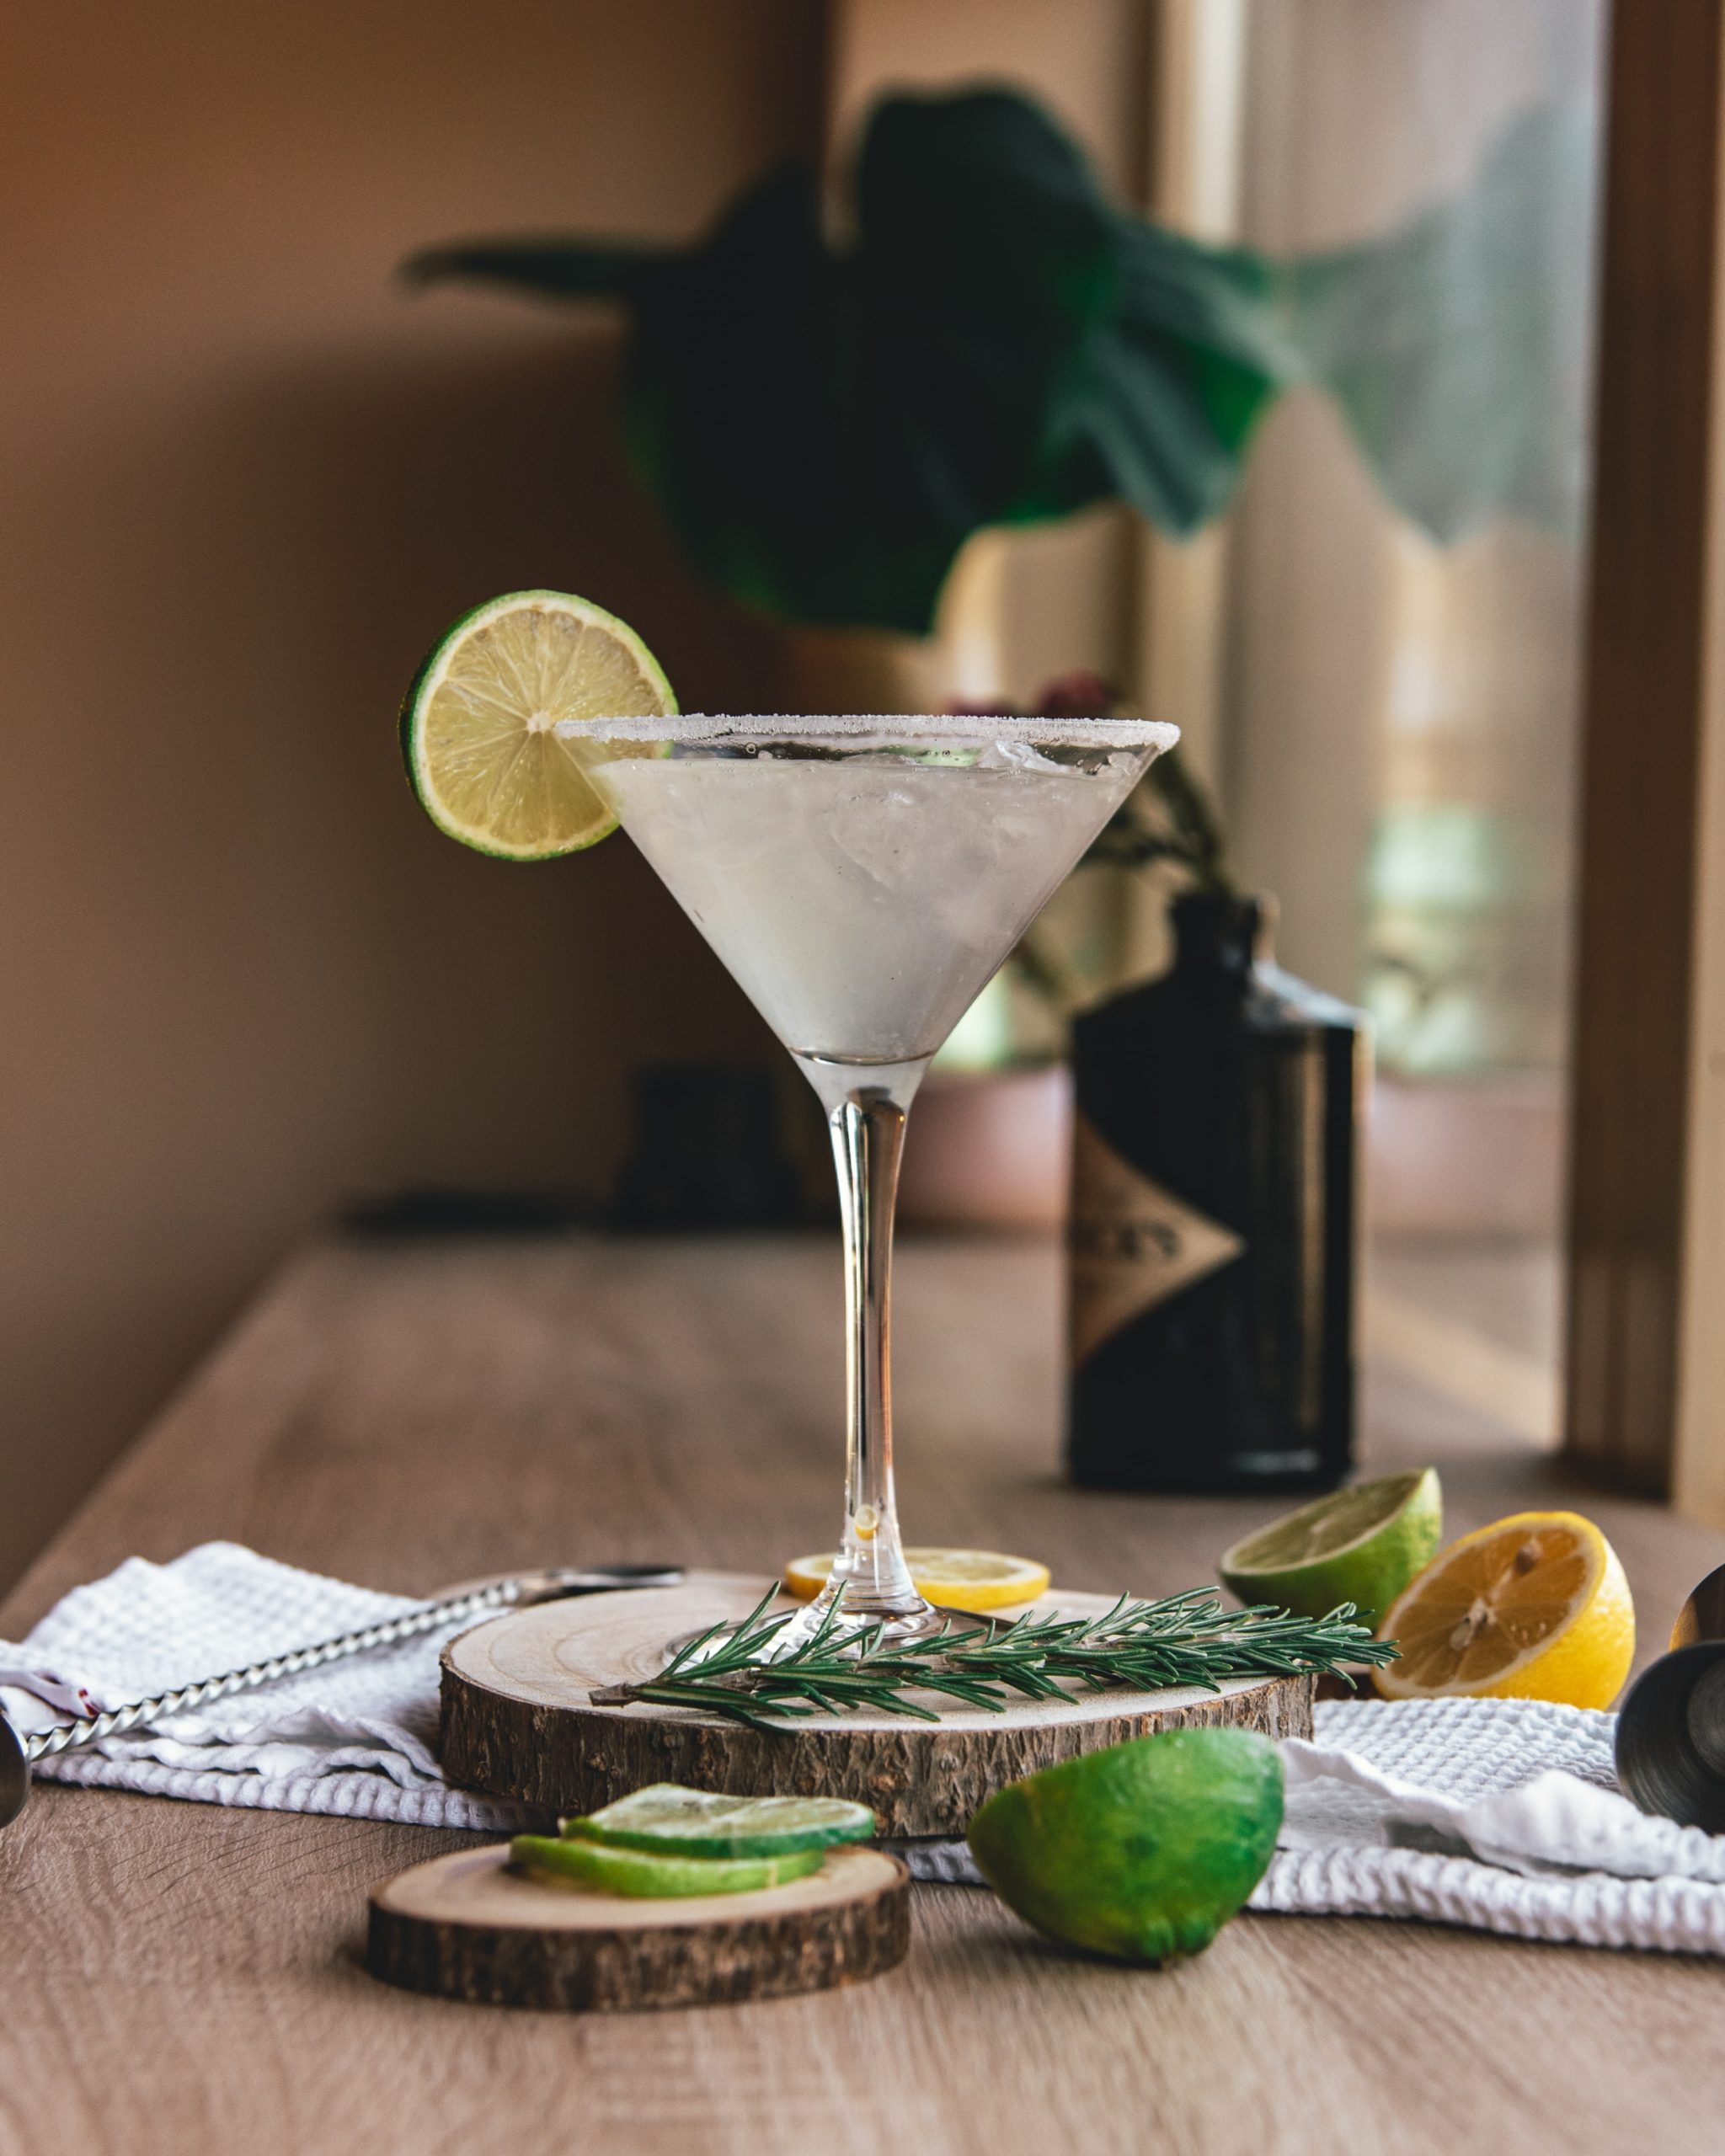 clear martini glass with sliced lemon on brown wooden table